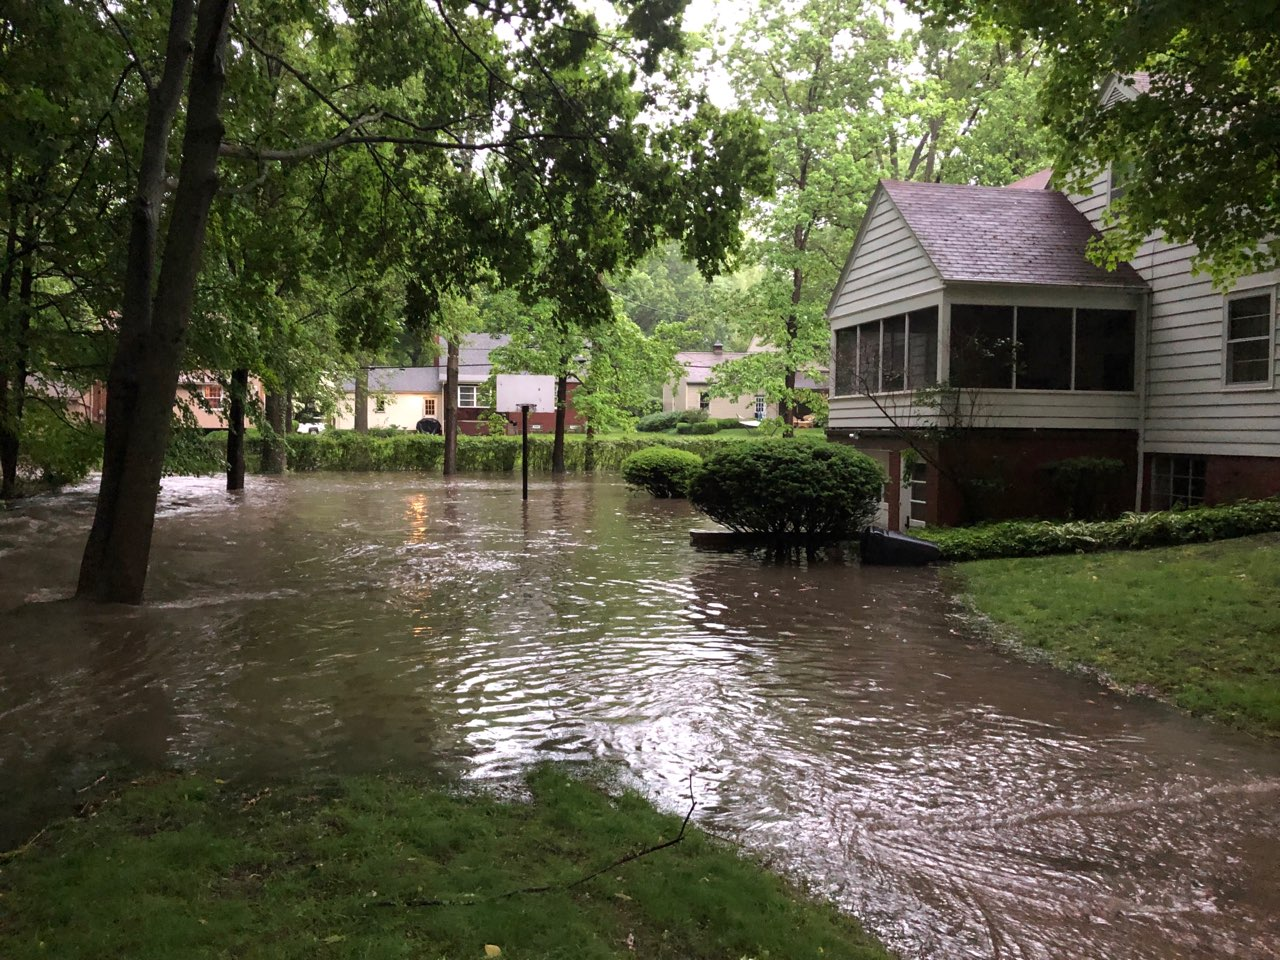 The same Township home as above, after flooding.